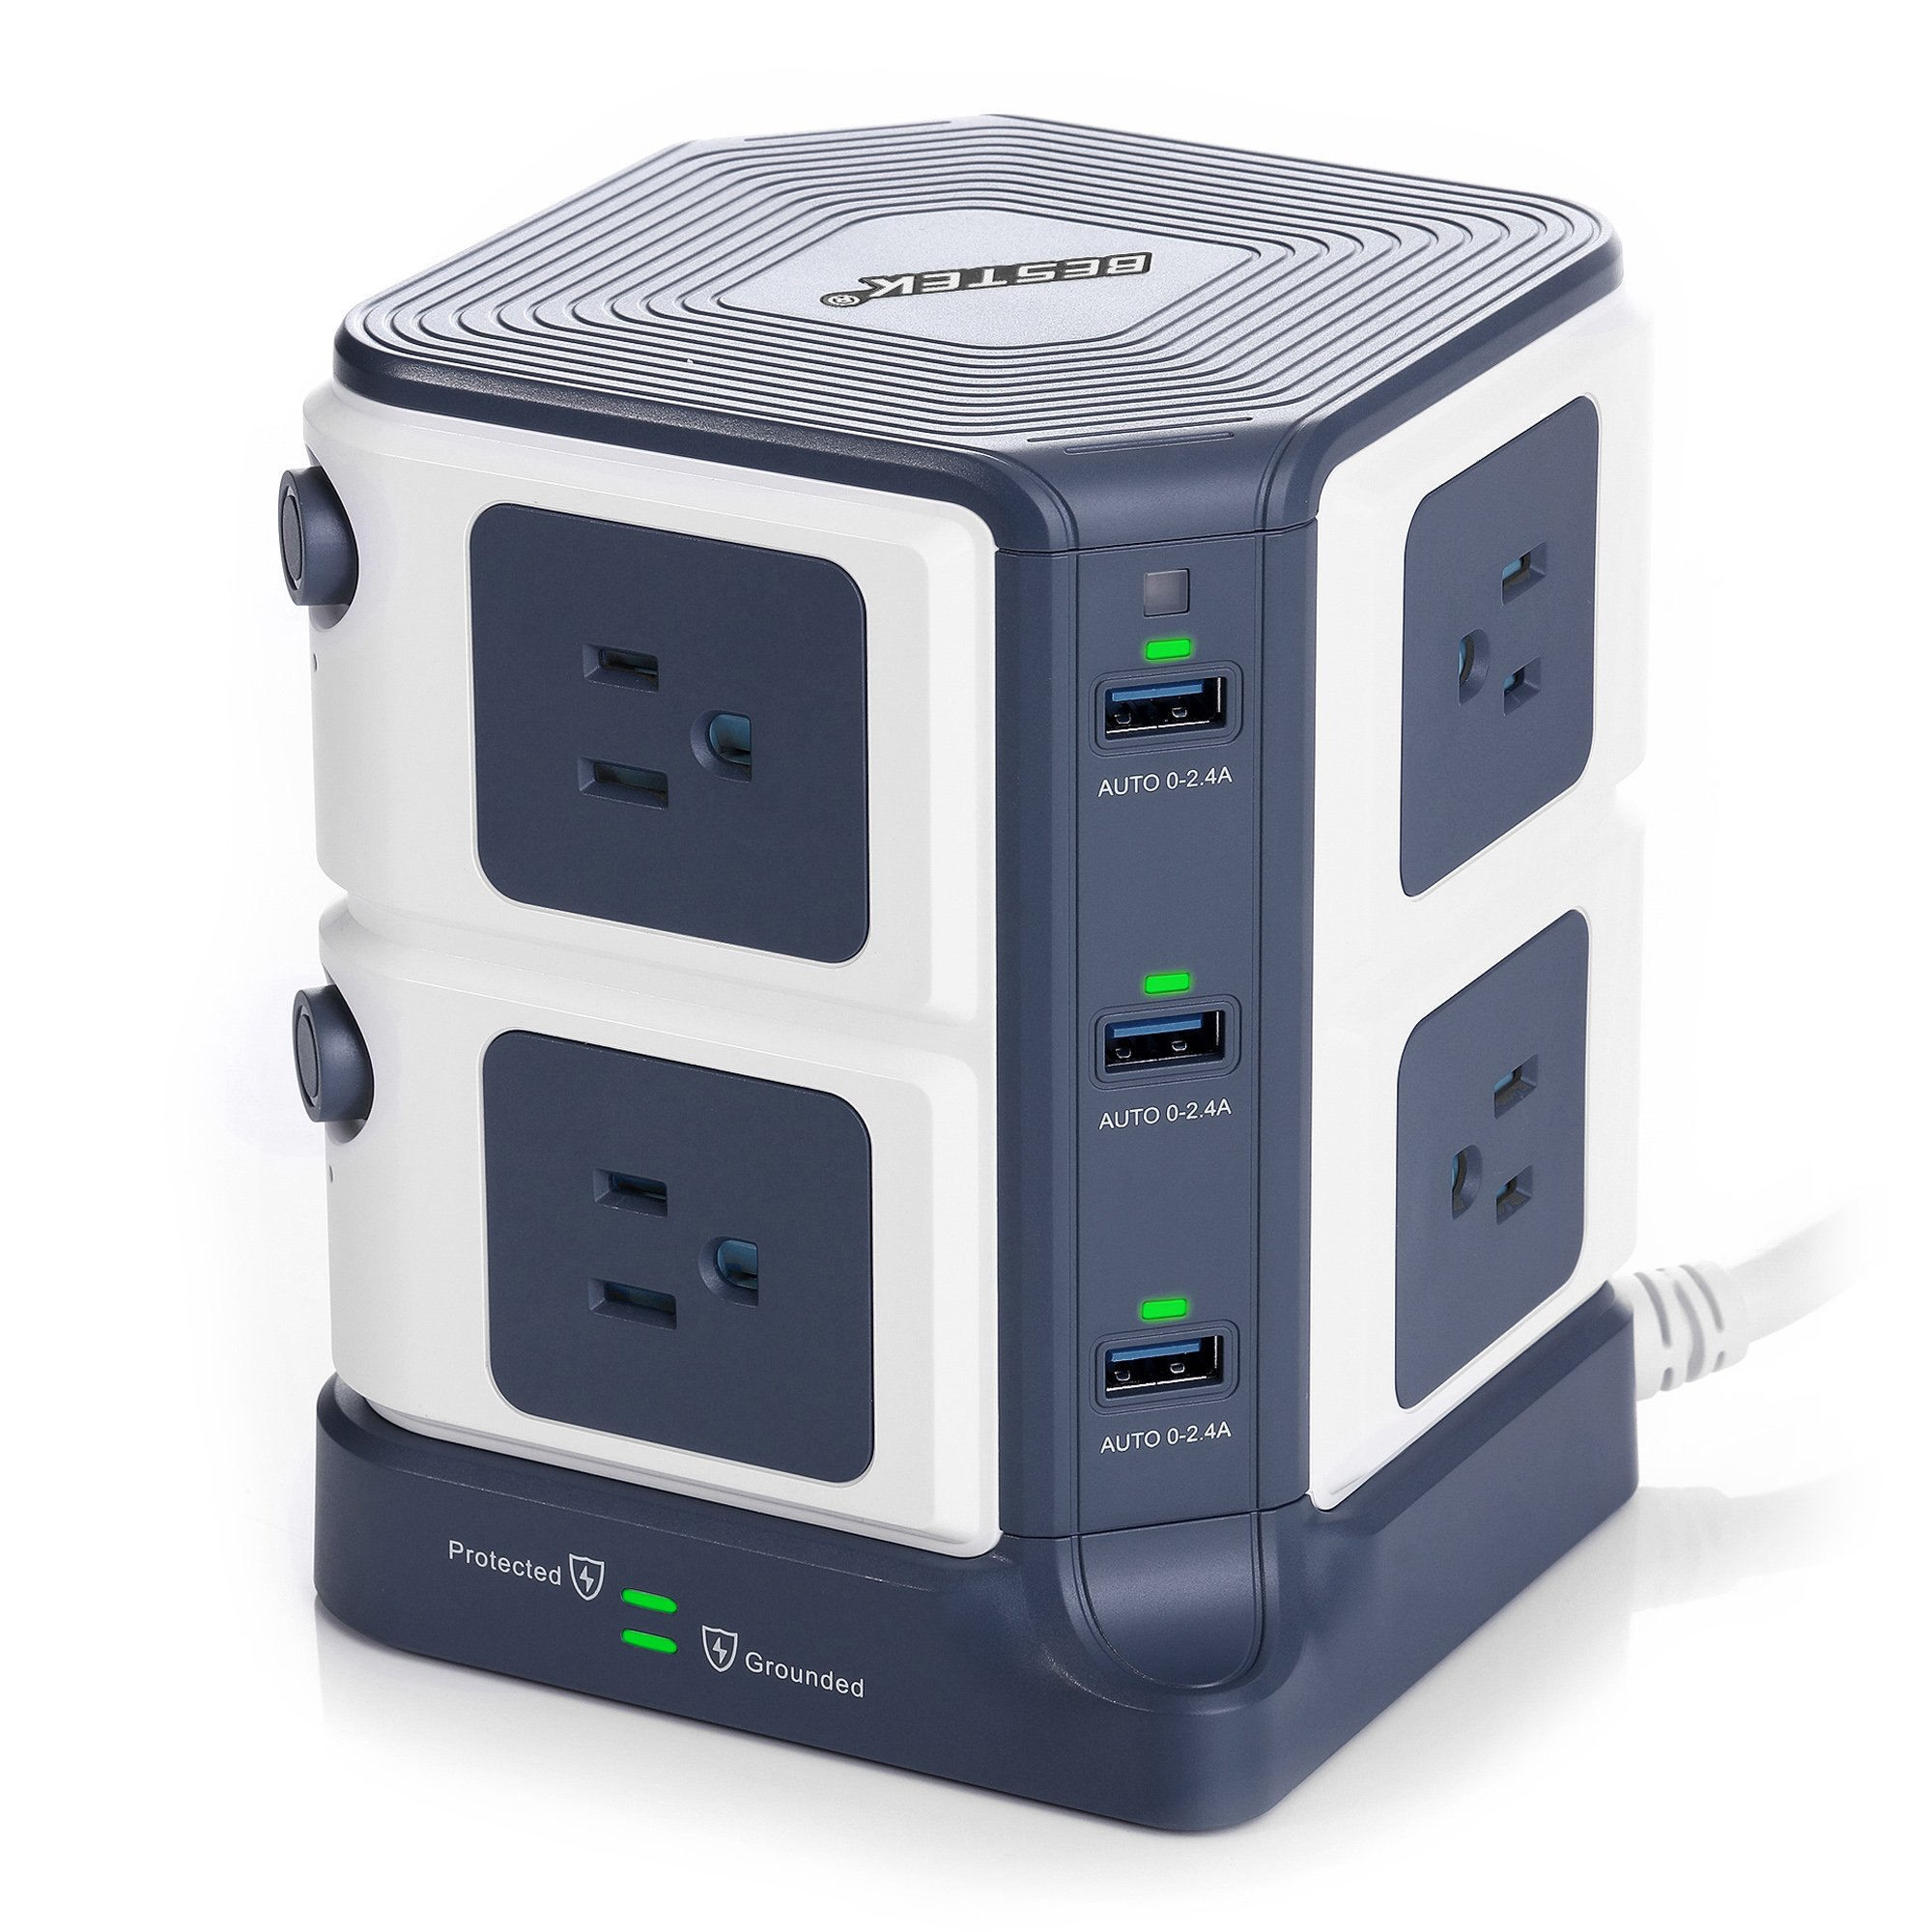 BESTEK Surge Protector 8-Outlet and 40W 6-Port Smart USB Power Strip with 1500 Joules Surge Protection,ETL Listed,Dorm Room Accessories